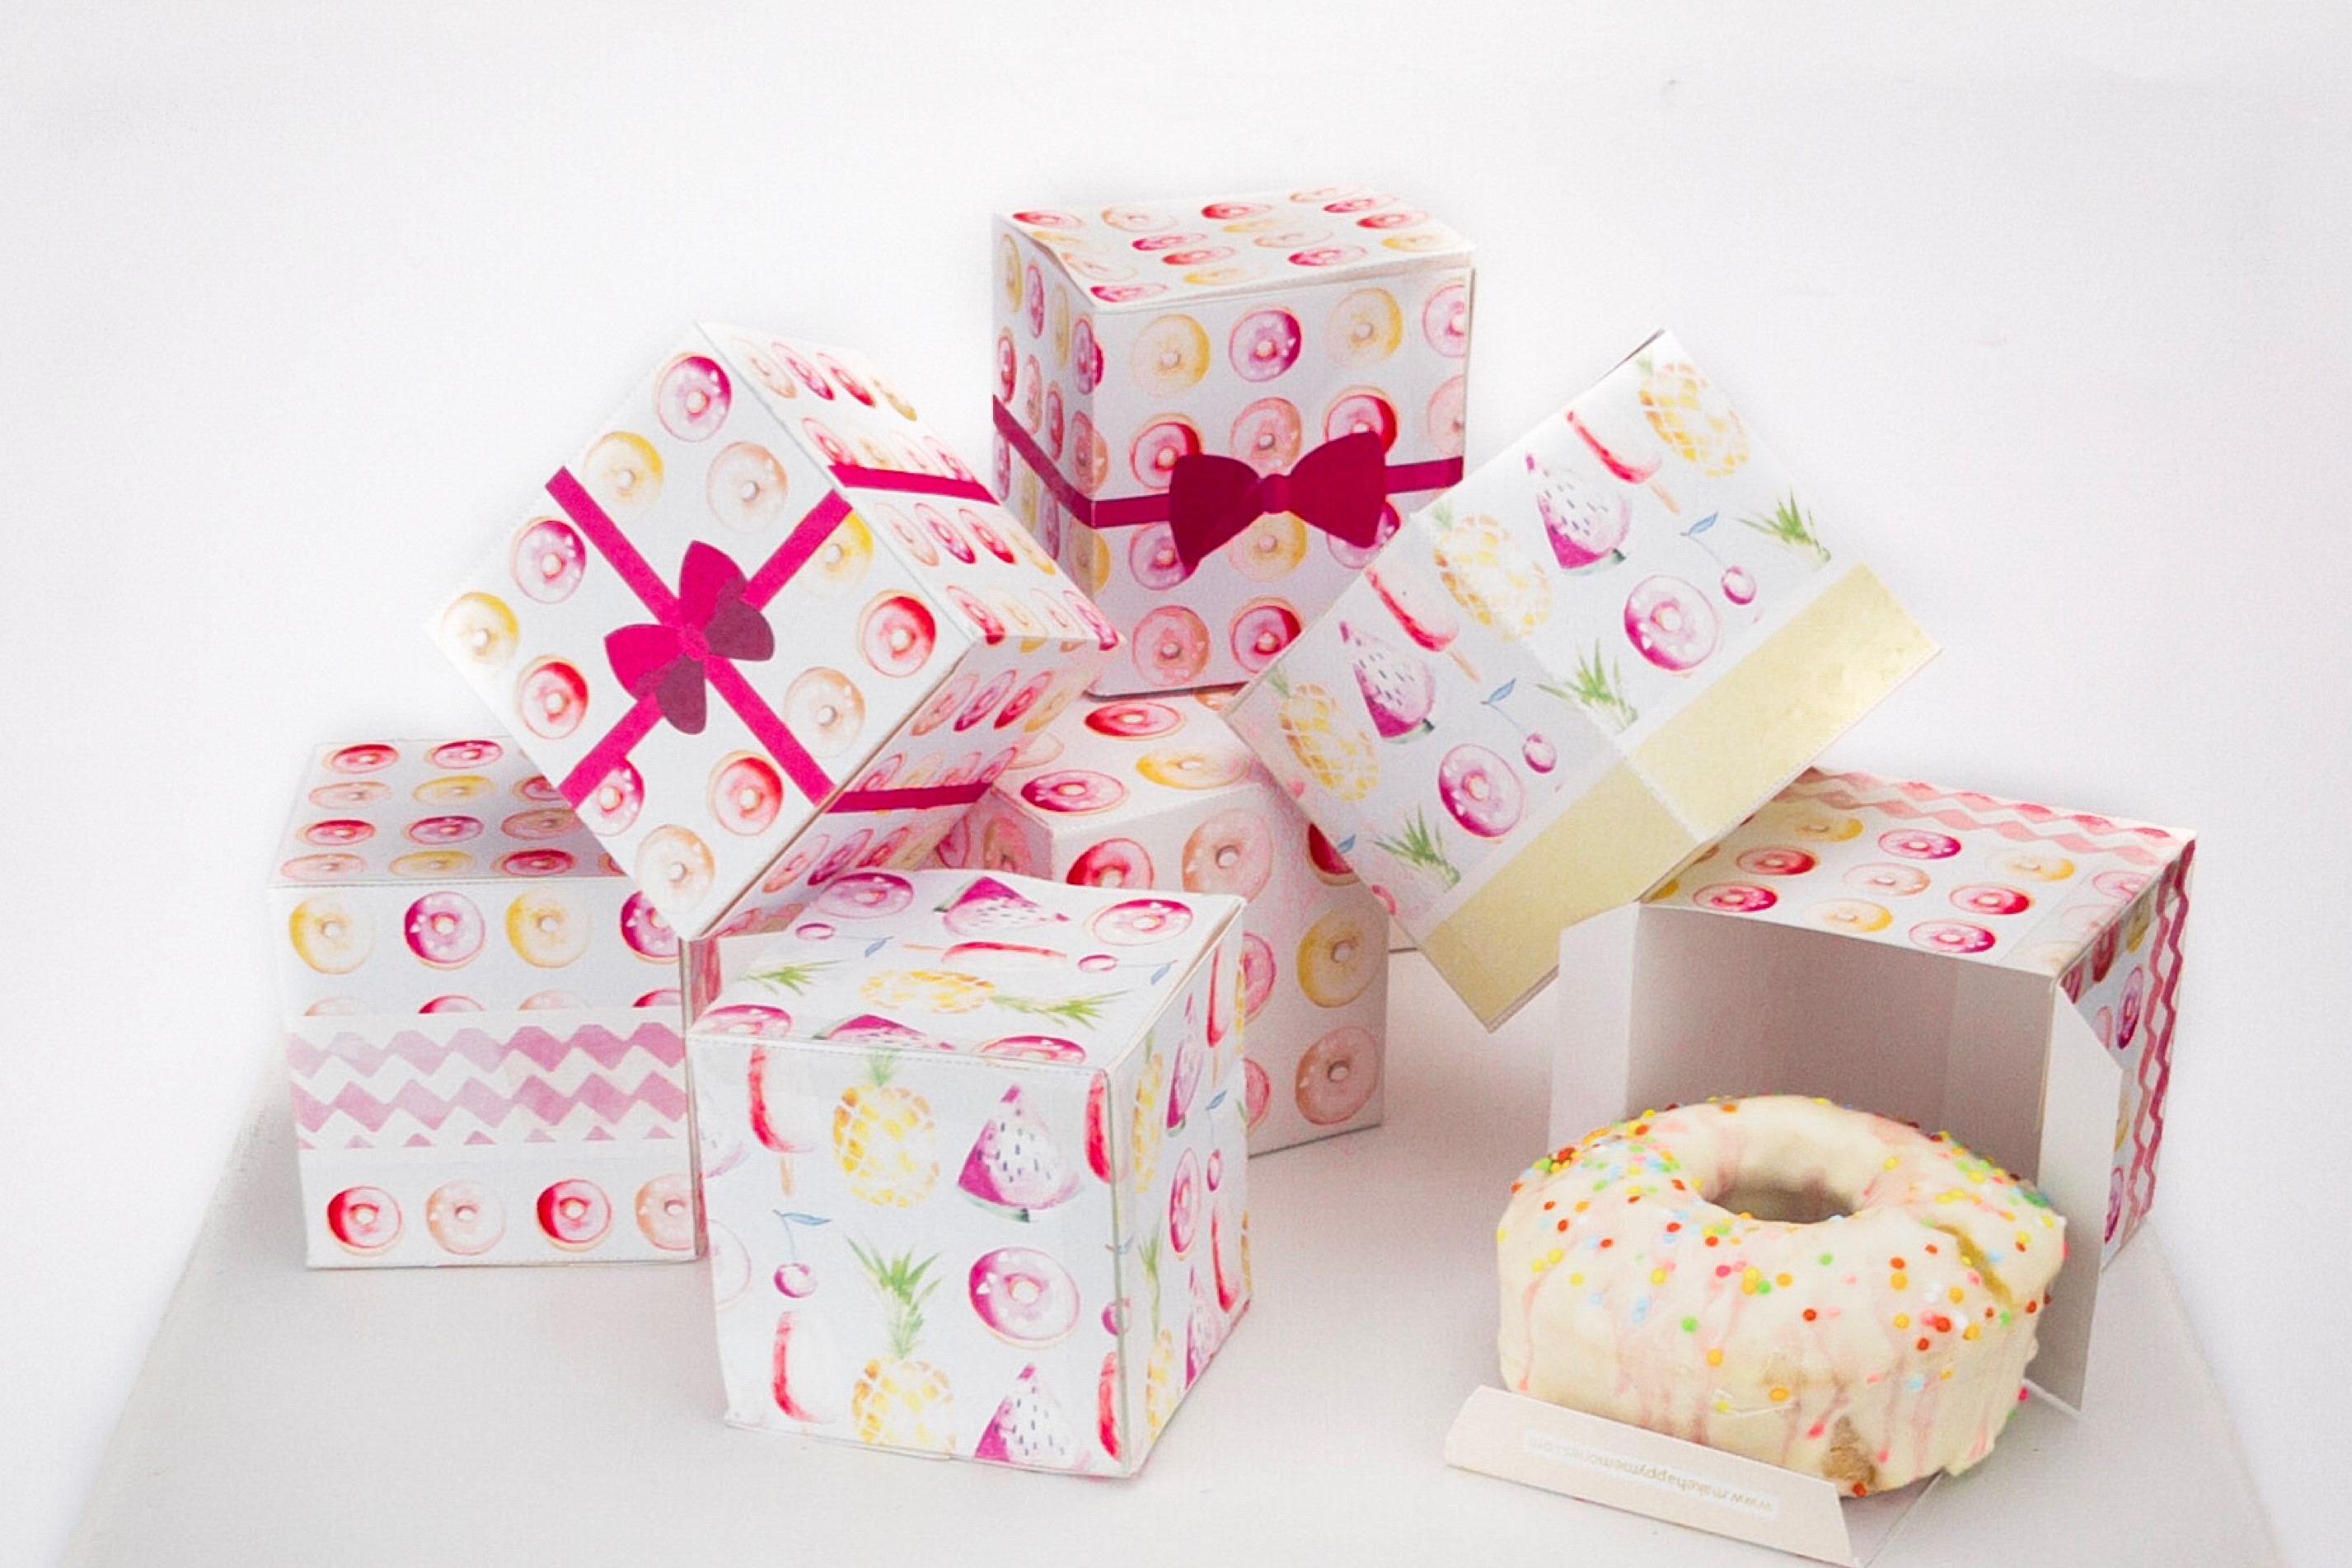 DIY Handmade Favor Boxes